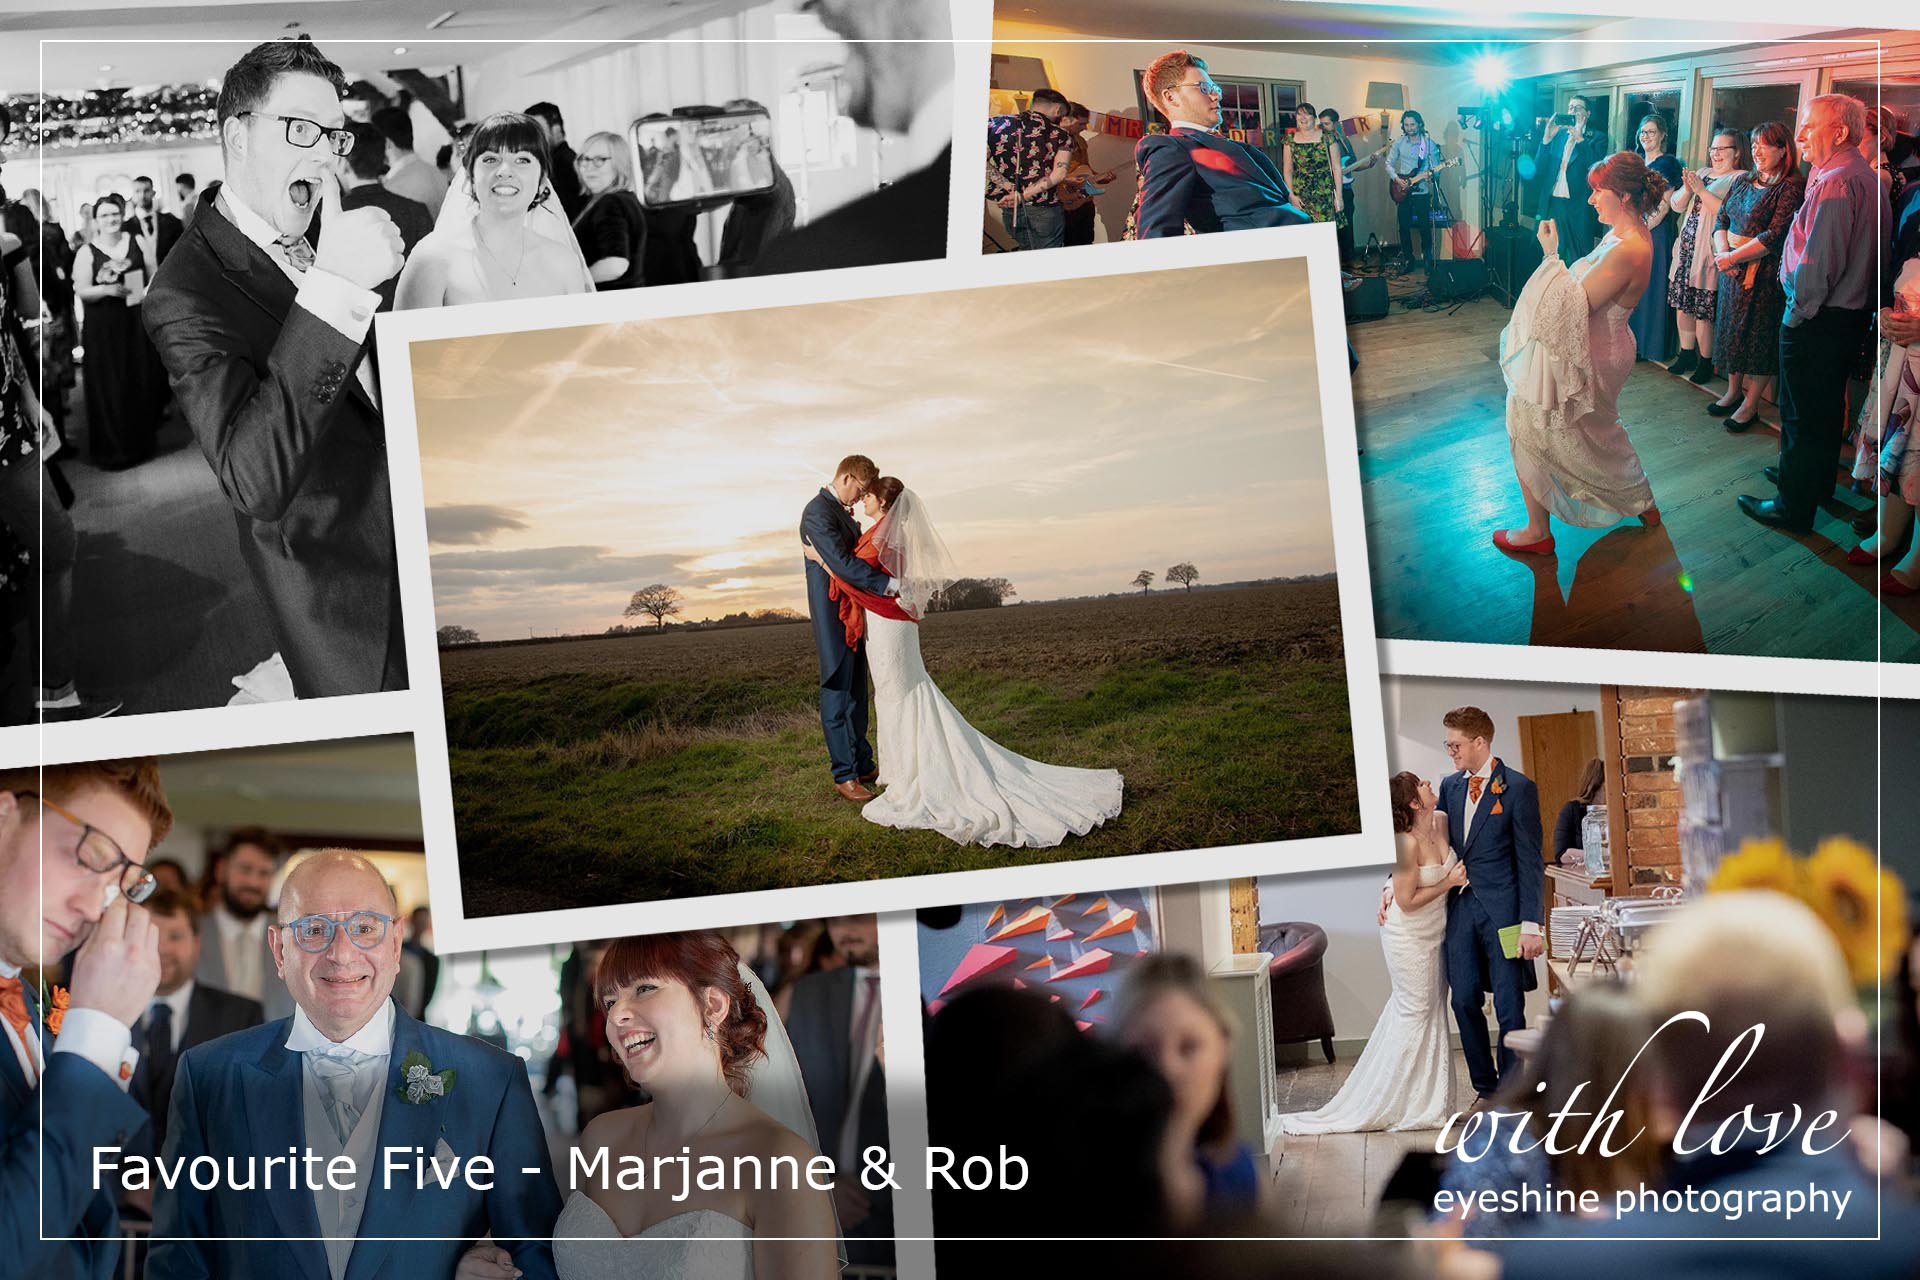 Favourite Five wedding photographs - The Compasses at Pattiswick